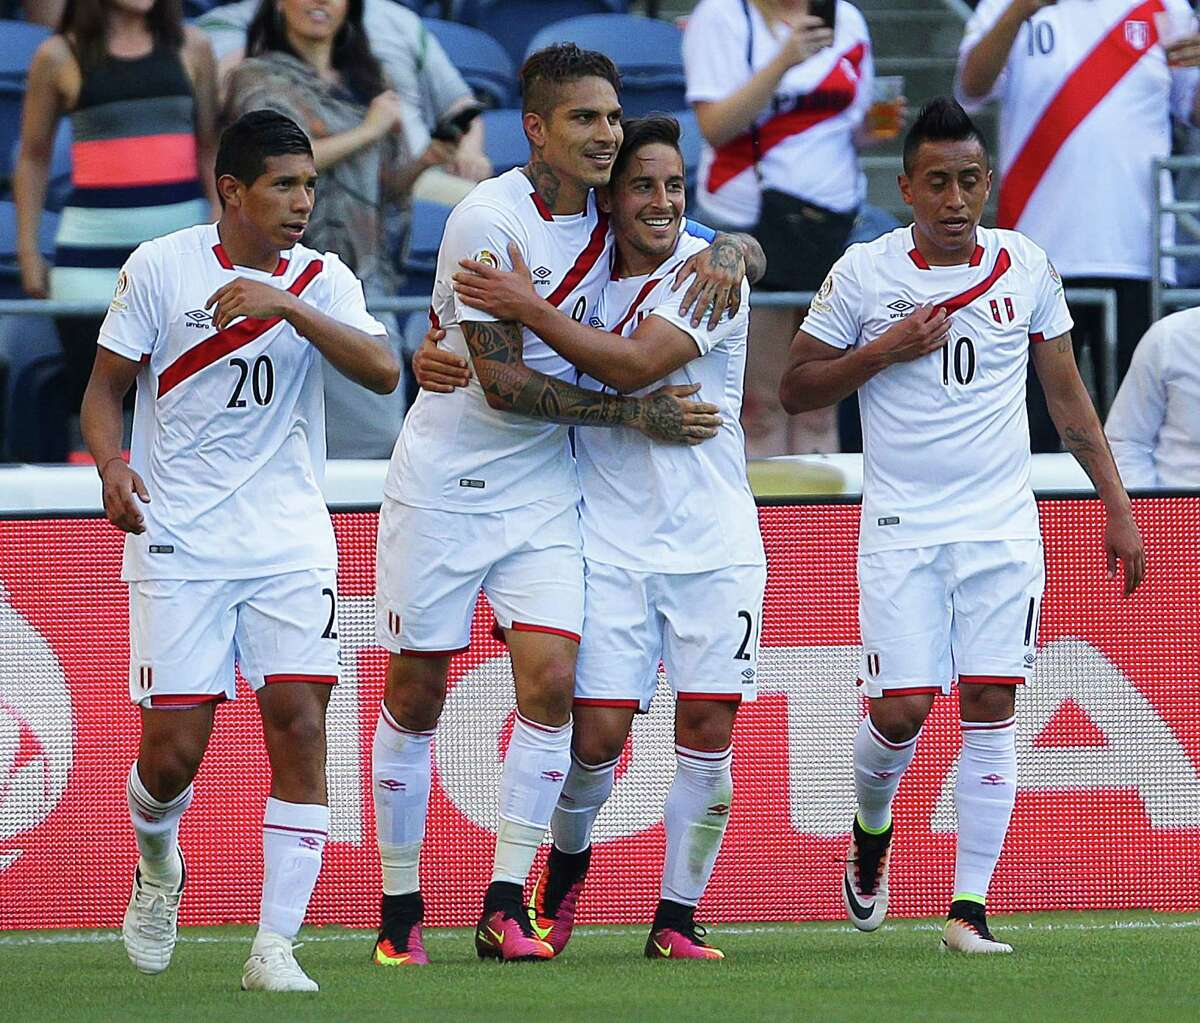 Peru's Paolo Guerrero (9) celebrates with teammates after scoring on Haiti during the second half of the Copa America Centenario game between Haiti and Peru, Saturday, May 4, 2016 at CenturyLink Field. Peru won 1-0.